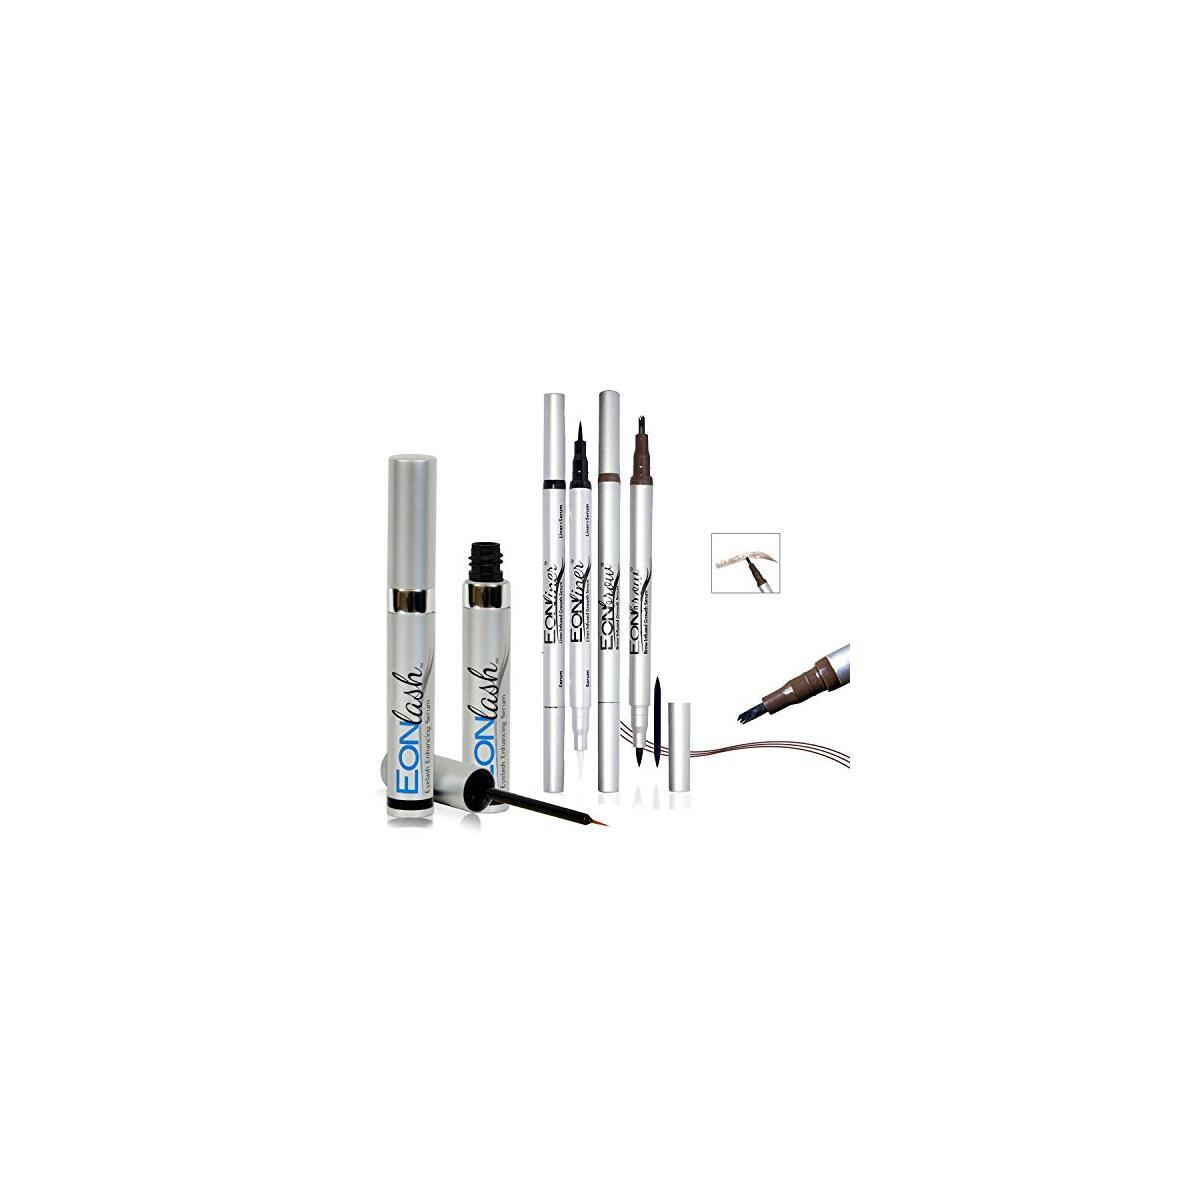 Dual Tip Liquid Eyeliner and Eyebrow Enhancer - Long Lasting | Super Slim | Ultra-Fine Felt Tip Liquid Pen Waterproof Smudge Proof Perfect Makeup, Quick Drying Formula with Eyelash Growth Serum